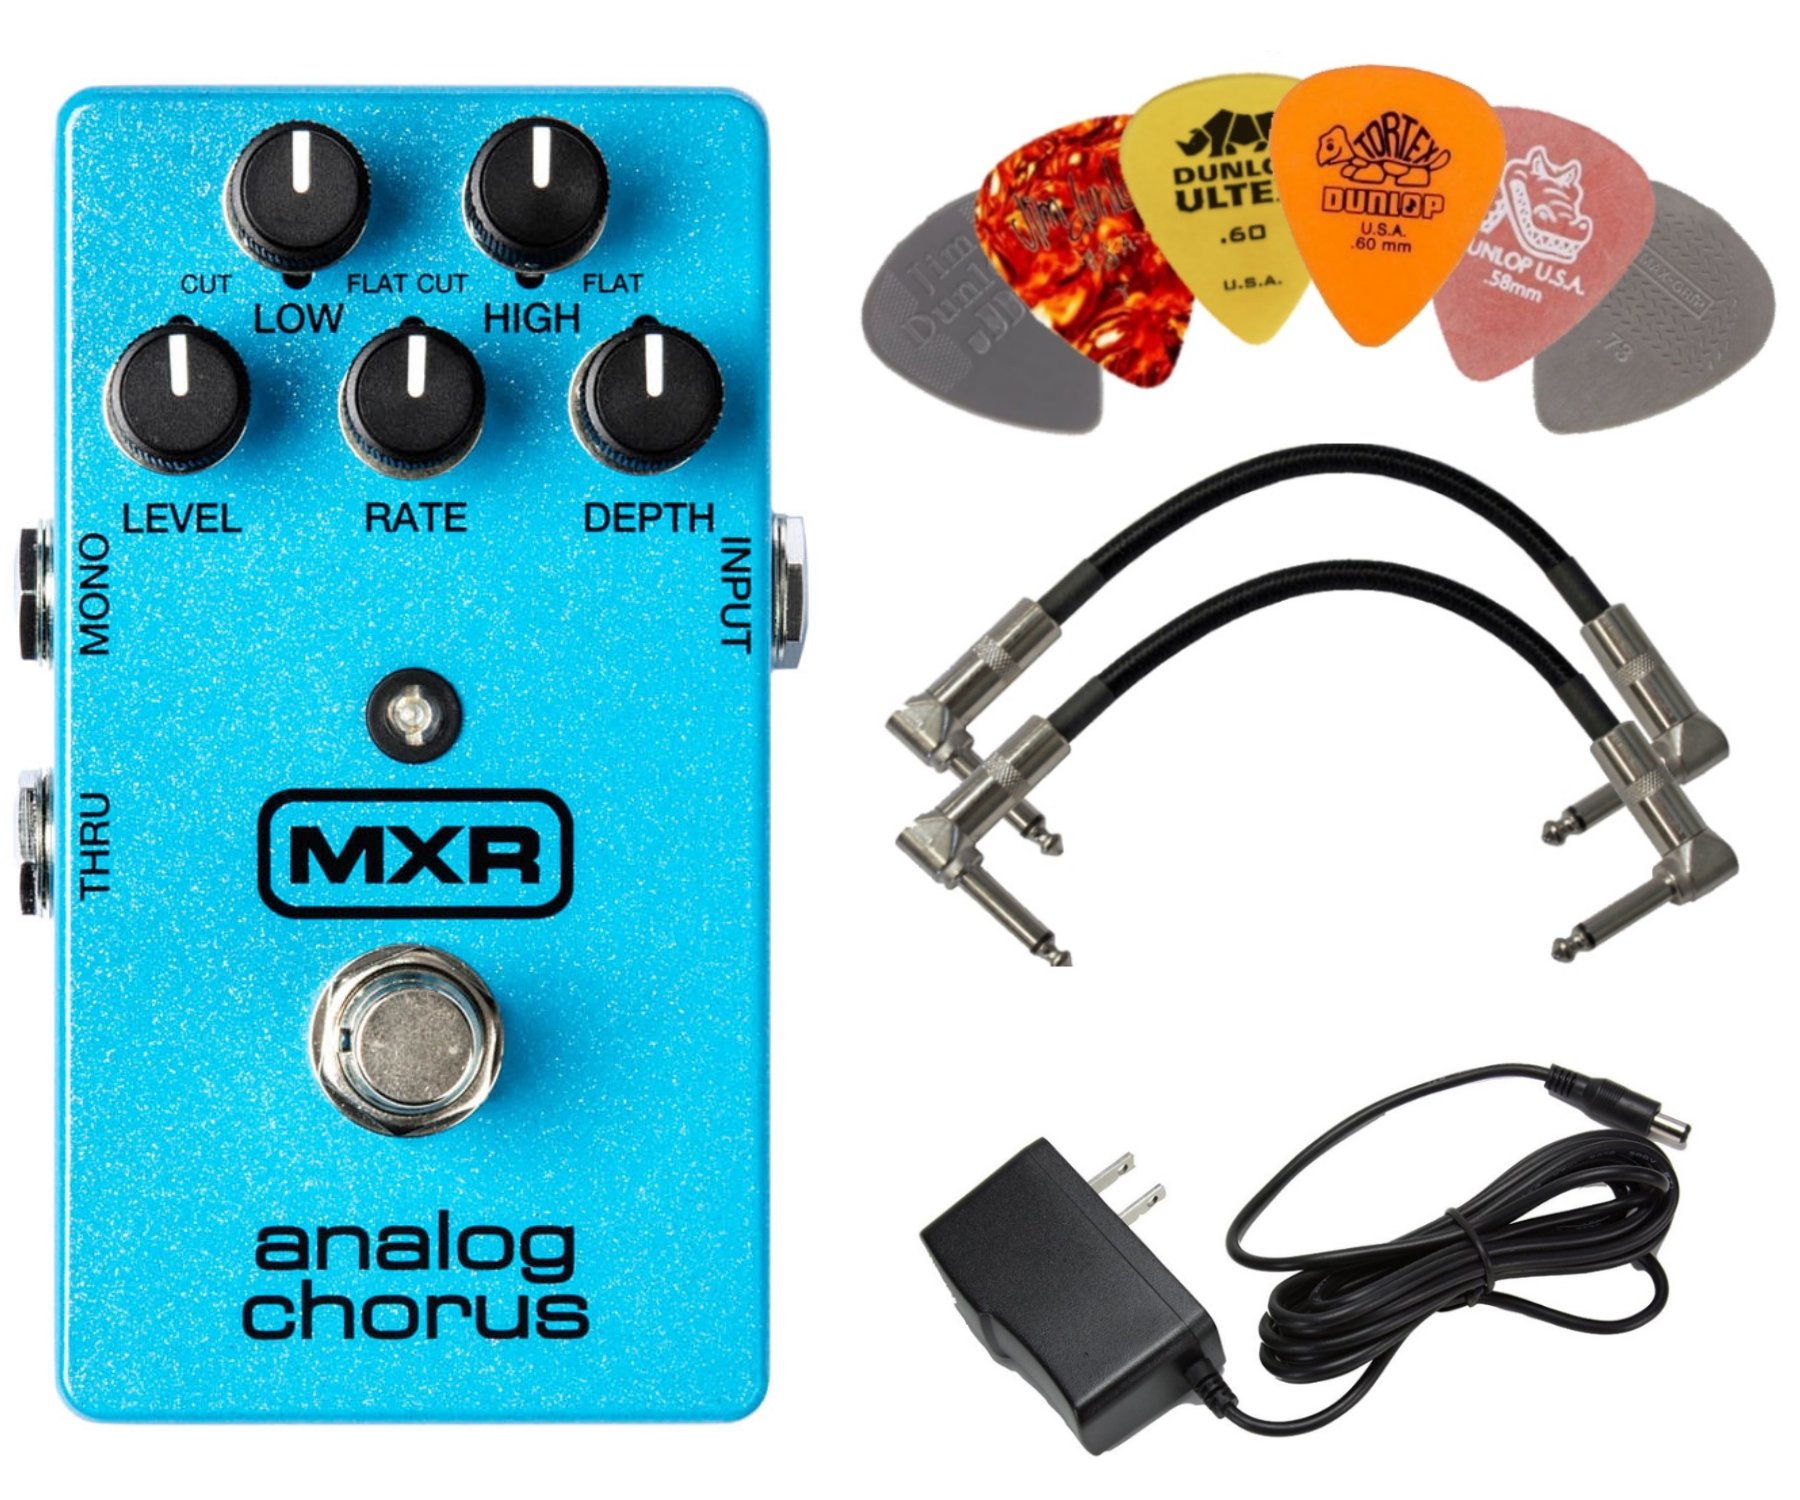 MXR M234 Analog Chorus Effects Pedal BUNDLE with AC/DC Adapter Power Supply for 9 Volt DC 1000mA, 2 Patch Cables and 6 Assorted Dunlop Guitar Picks by MXR